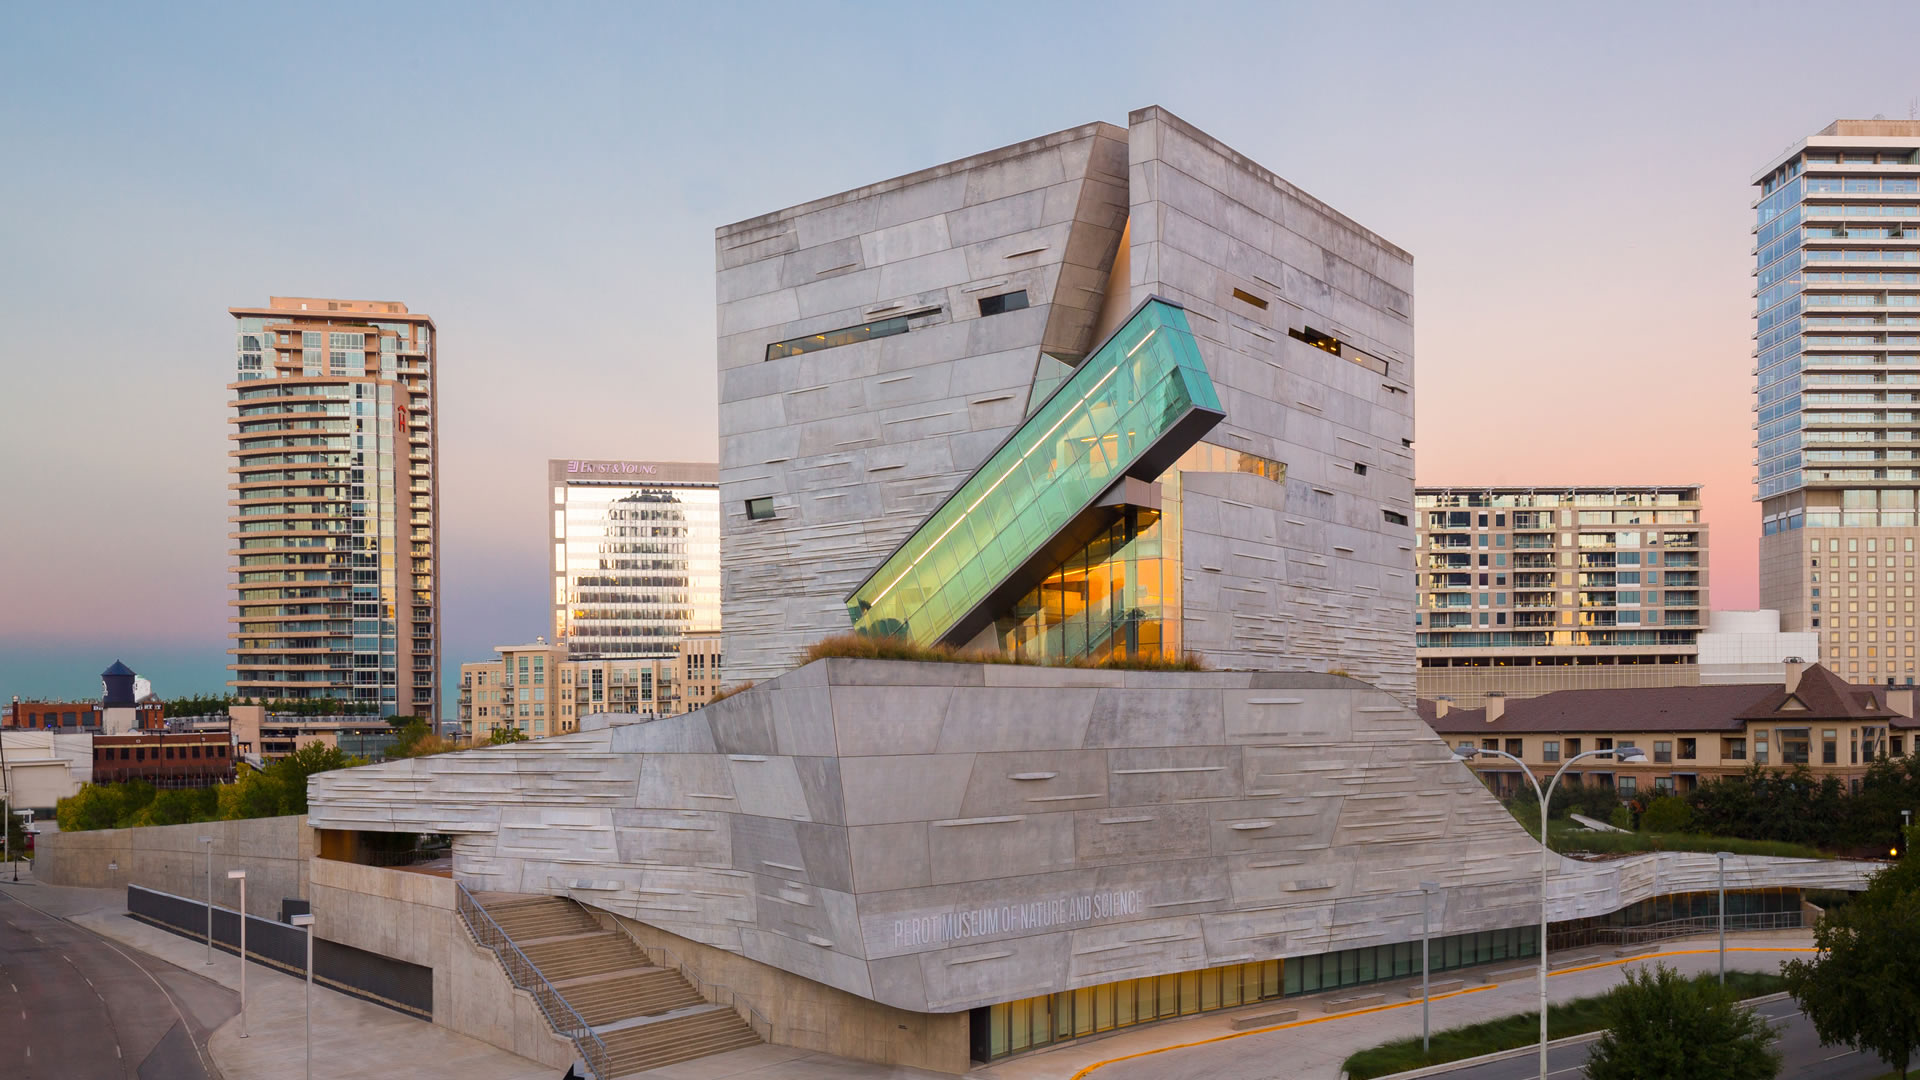 With 11 permanent exhibit halls in the heart of Dallas, the Perot Museum of Nature and Science provides an unforgettable experience for guests of all ages.